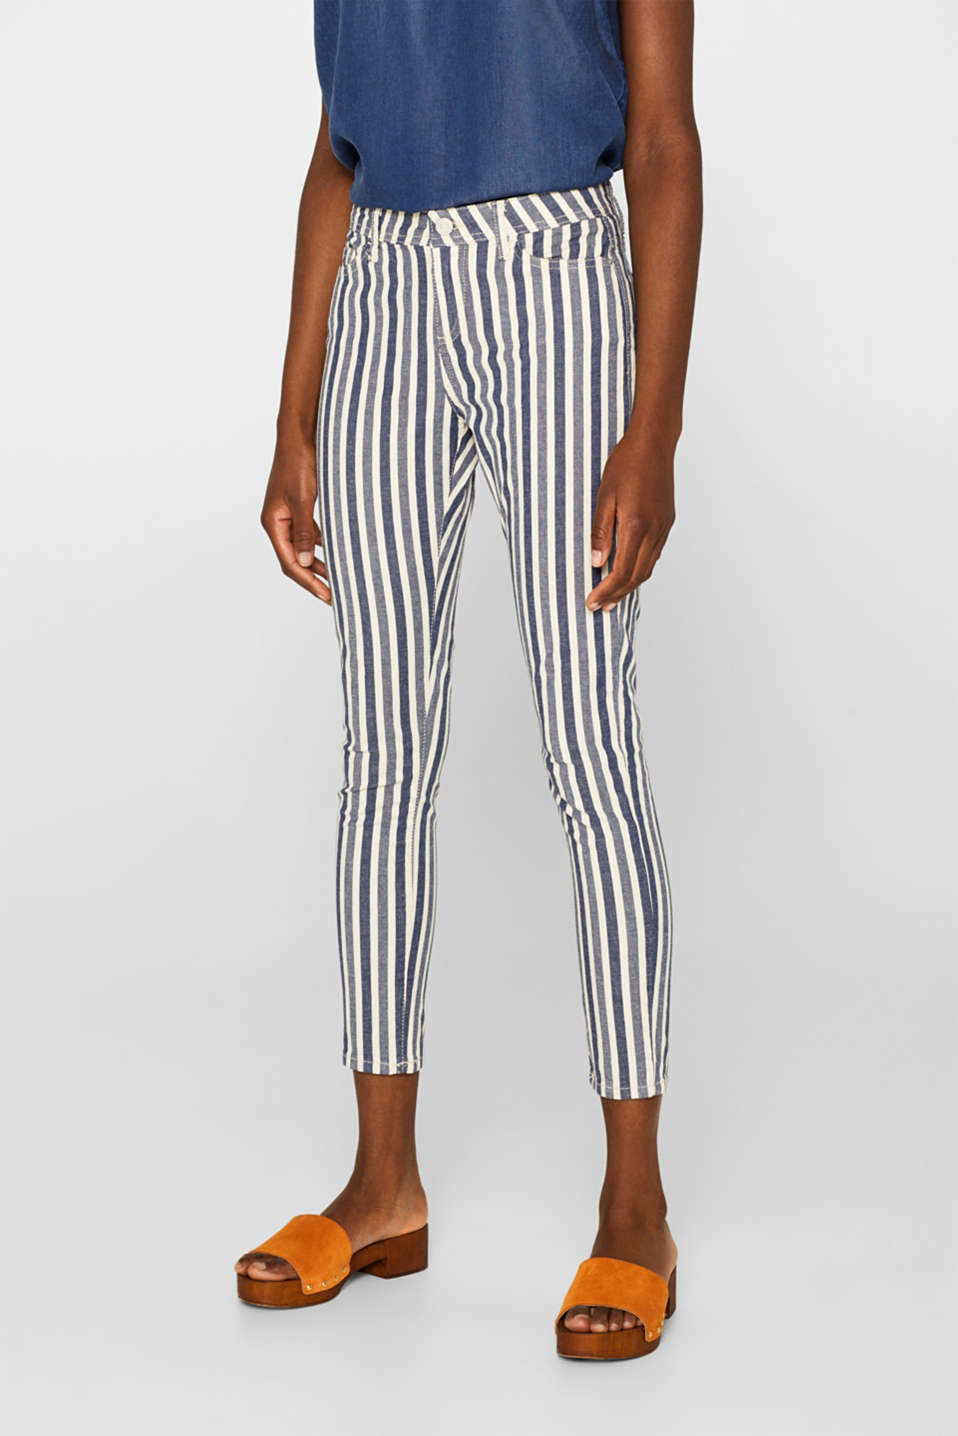 hohes Ansehen geringster Preis Großhandelsverkauf Esprit - Stretch jeans with stripes and organic cotton at ...